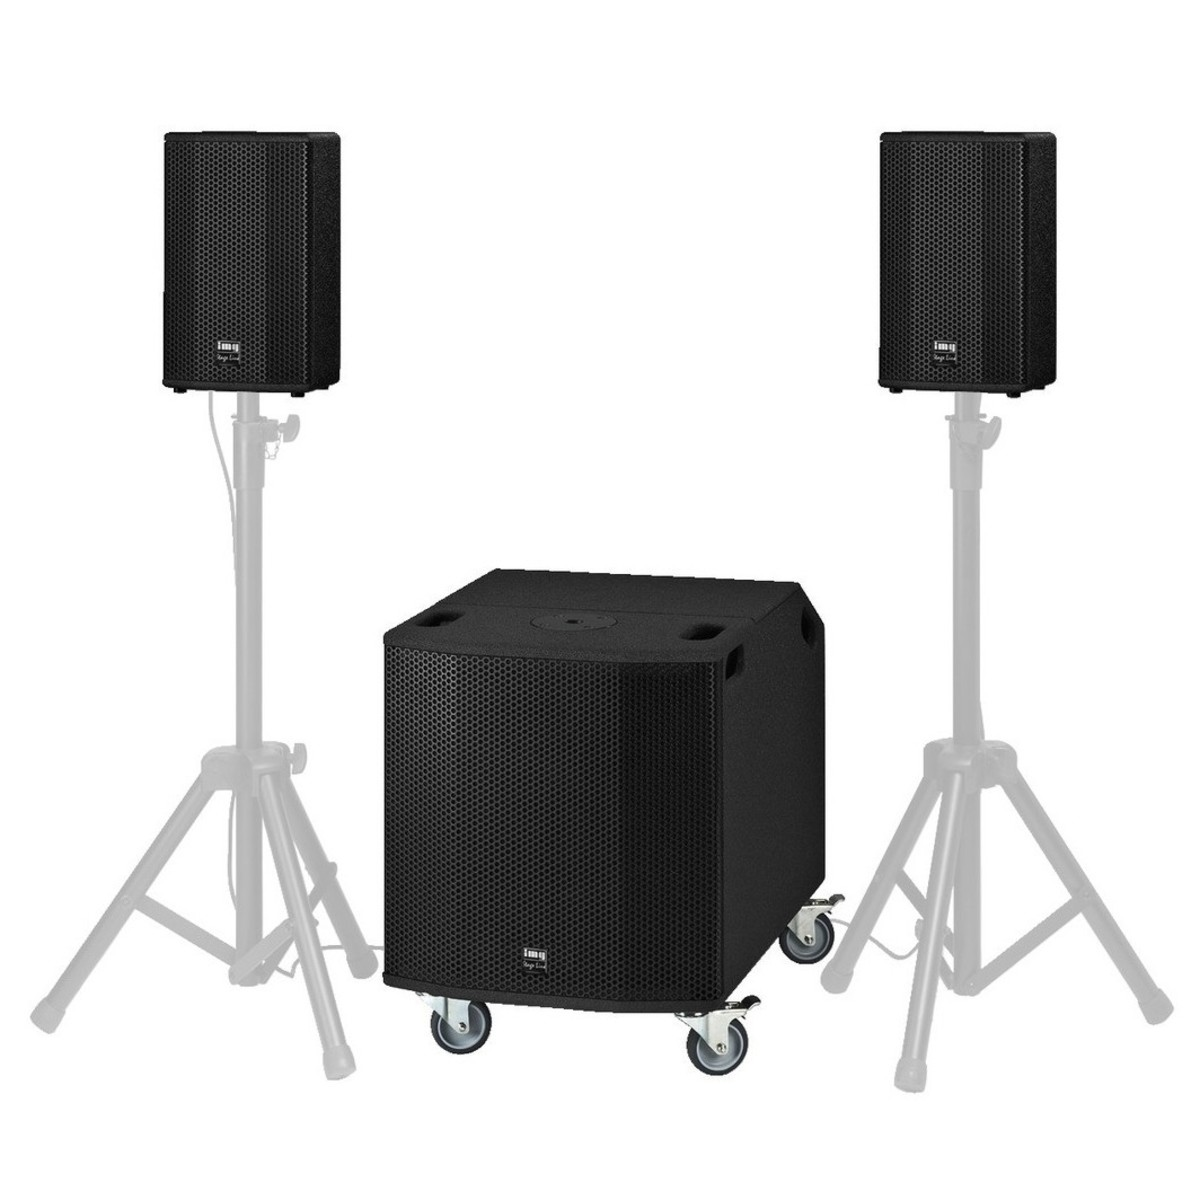 IMG Stageline PROTON 15MK2 Portable PA System | Gear4music